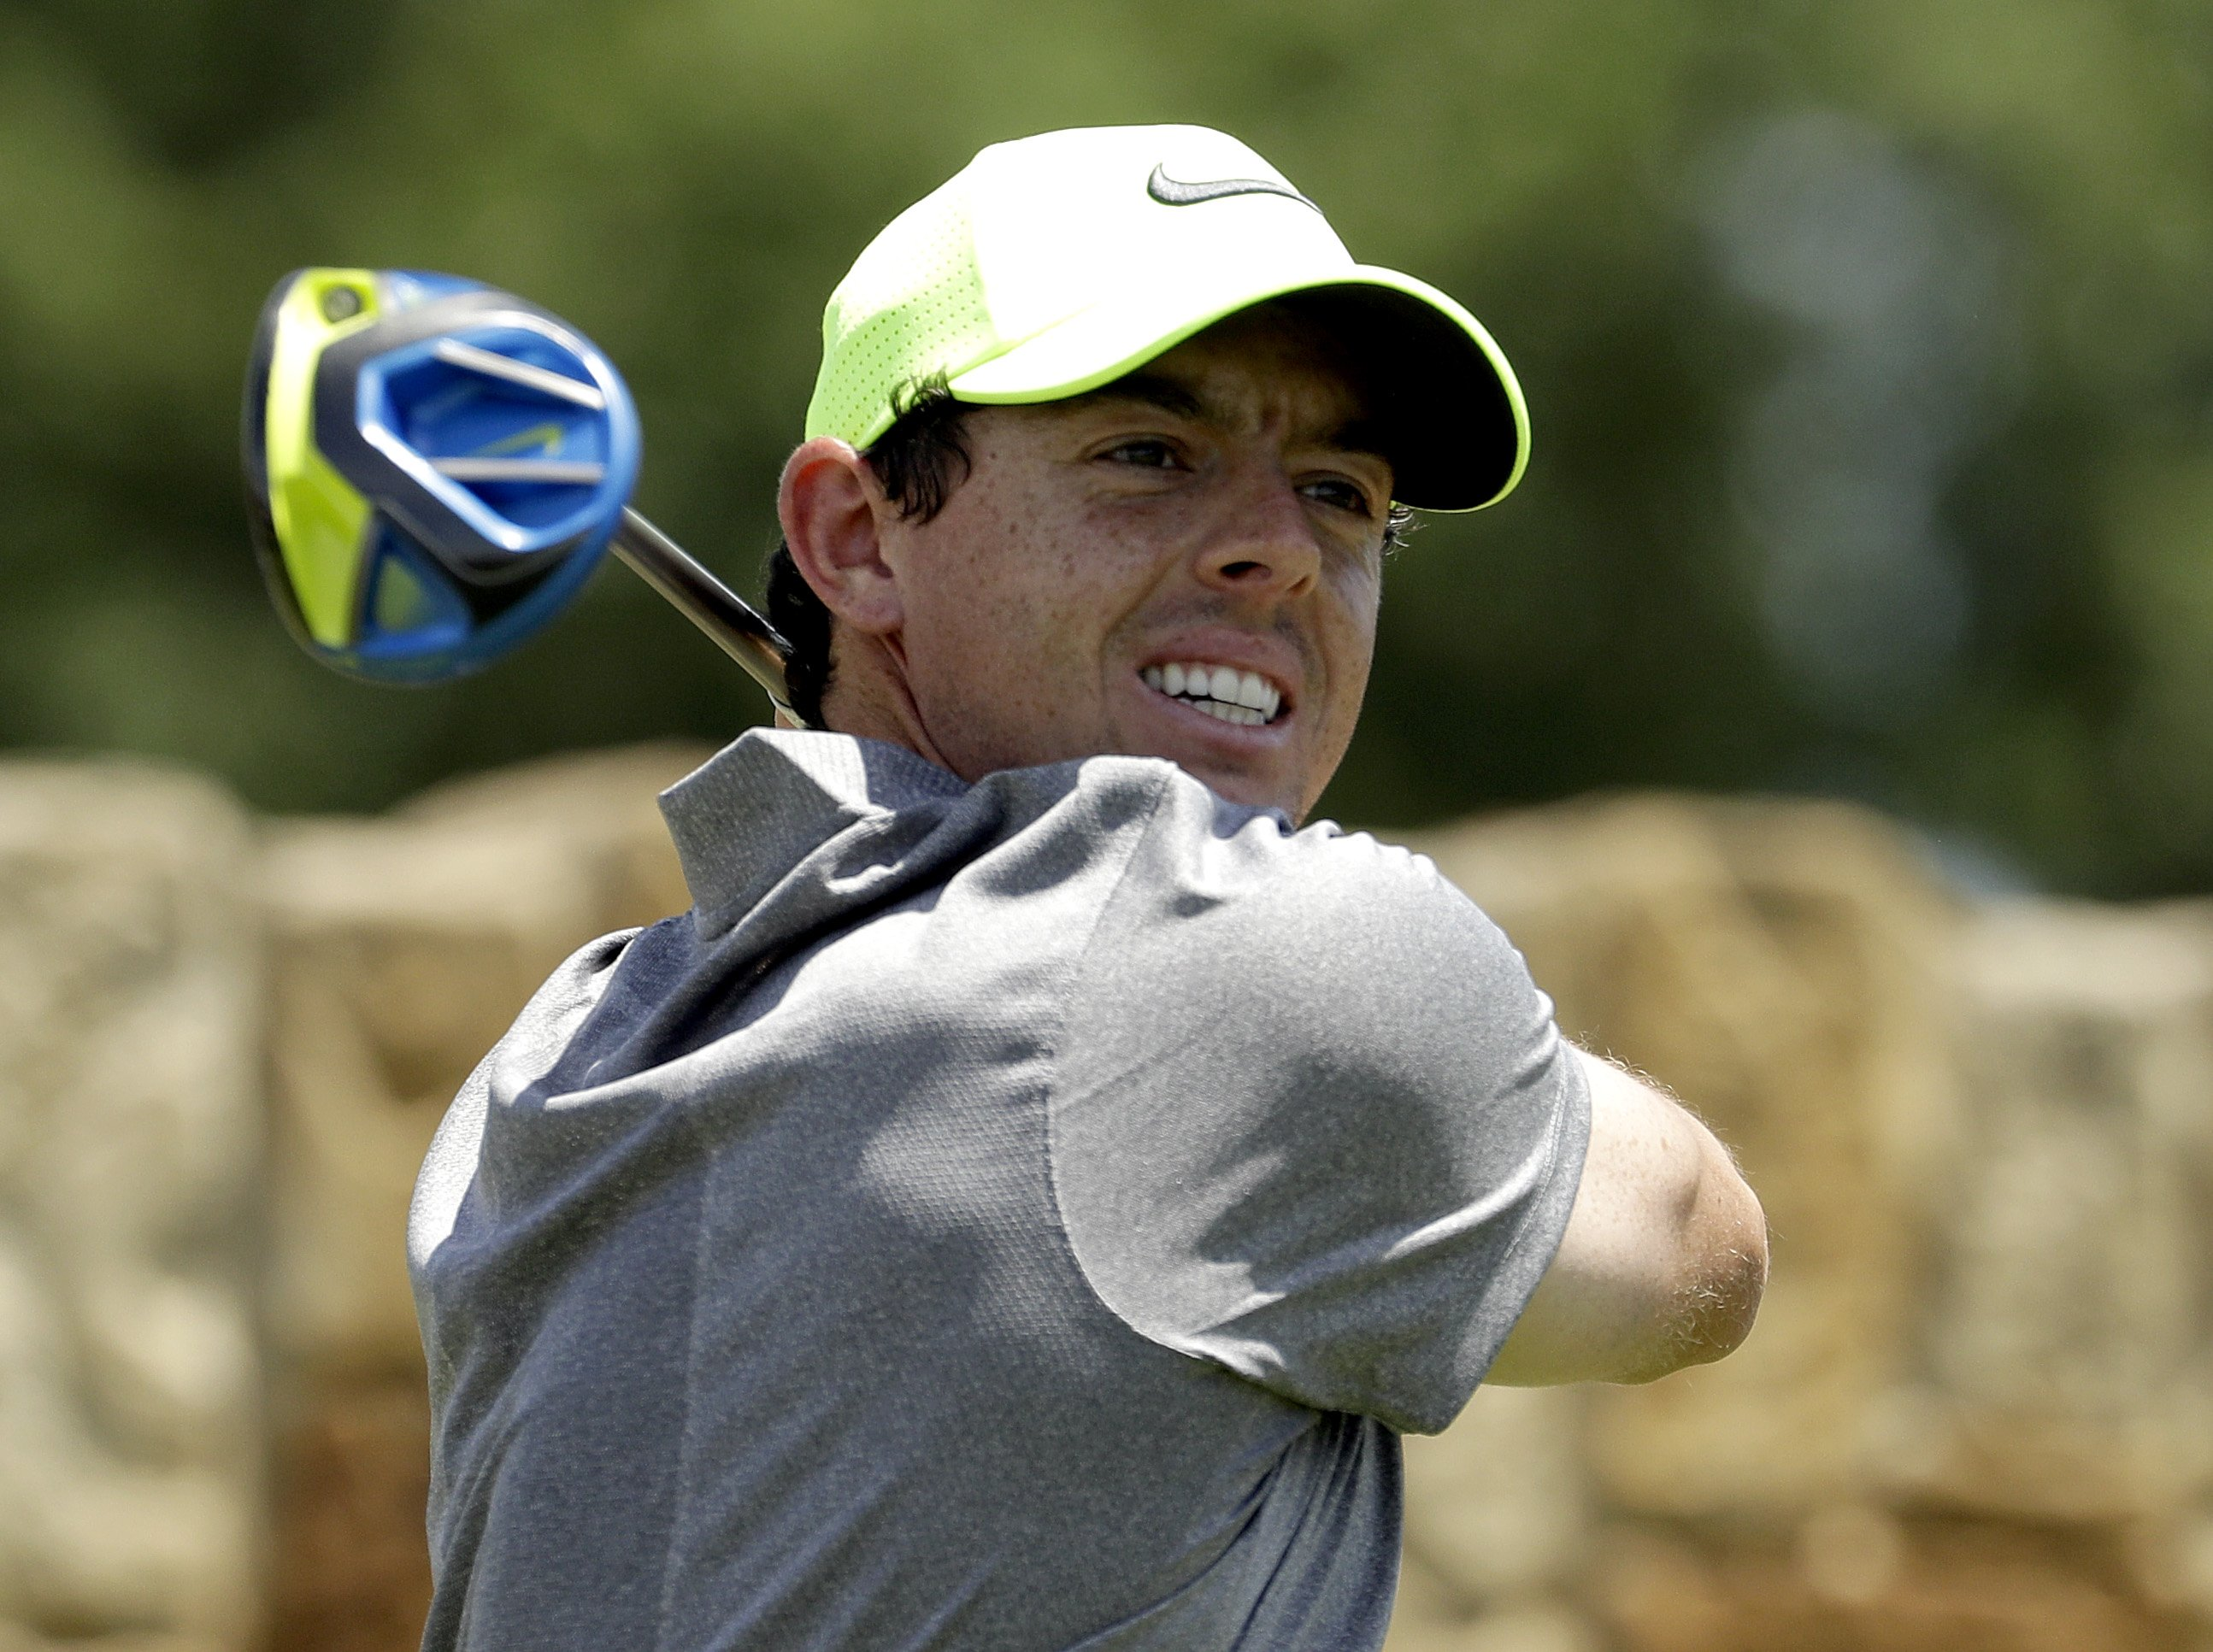 McIlroy, Mickelson and Fowler miss cut at US Open